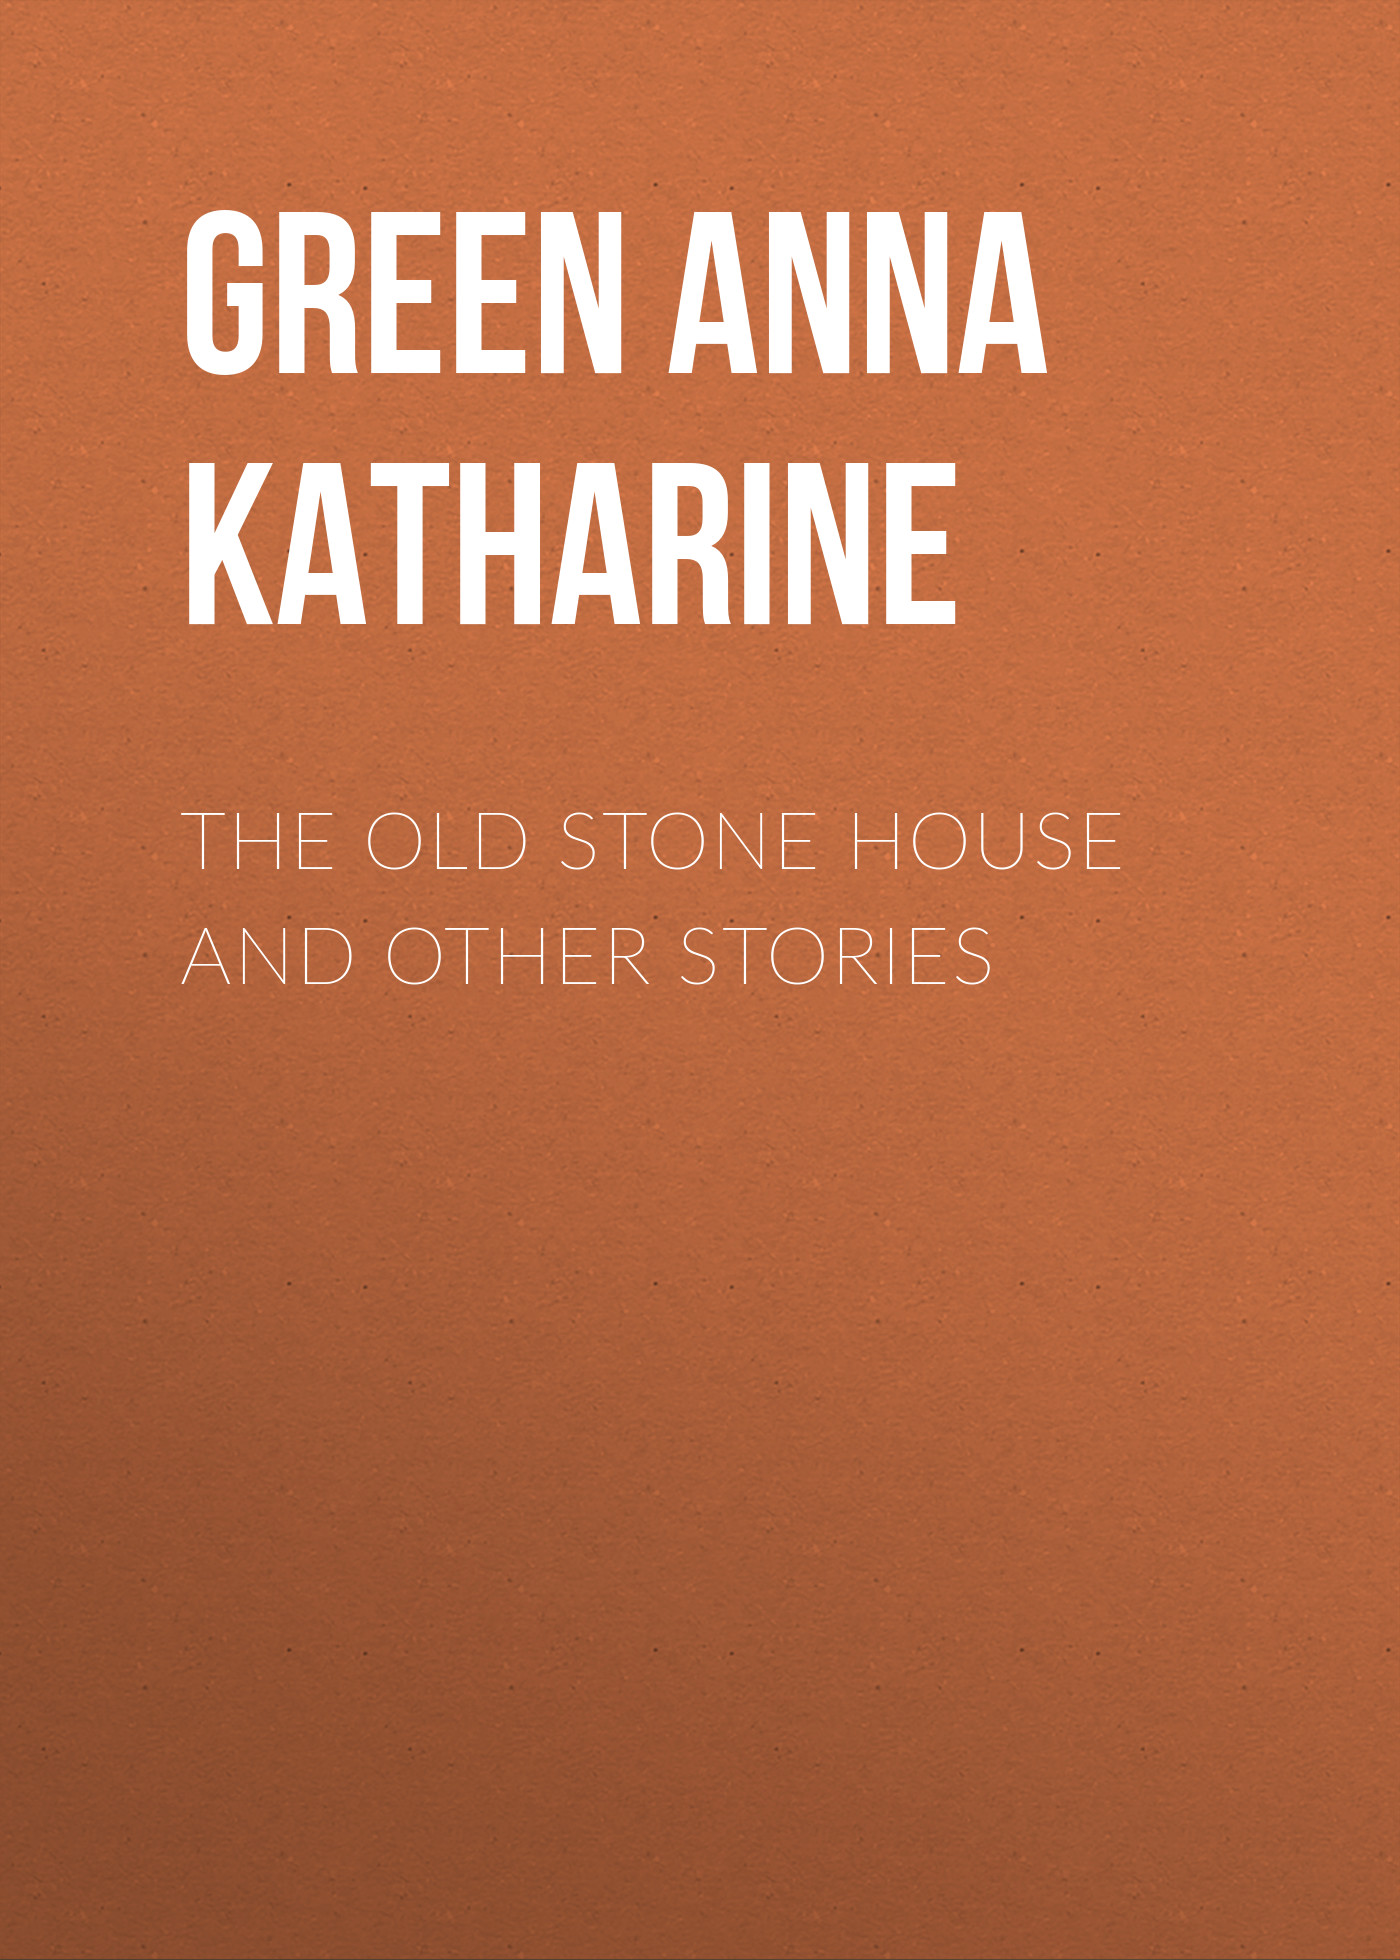 Green Anna Katharine The Old Stone House and Other Stories green anna katharine the golden slipper and other problems for violet strange